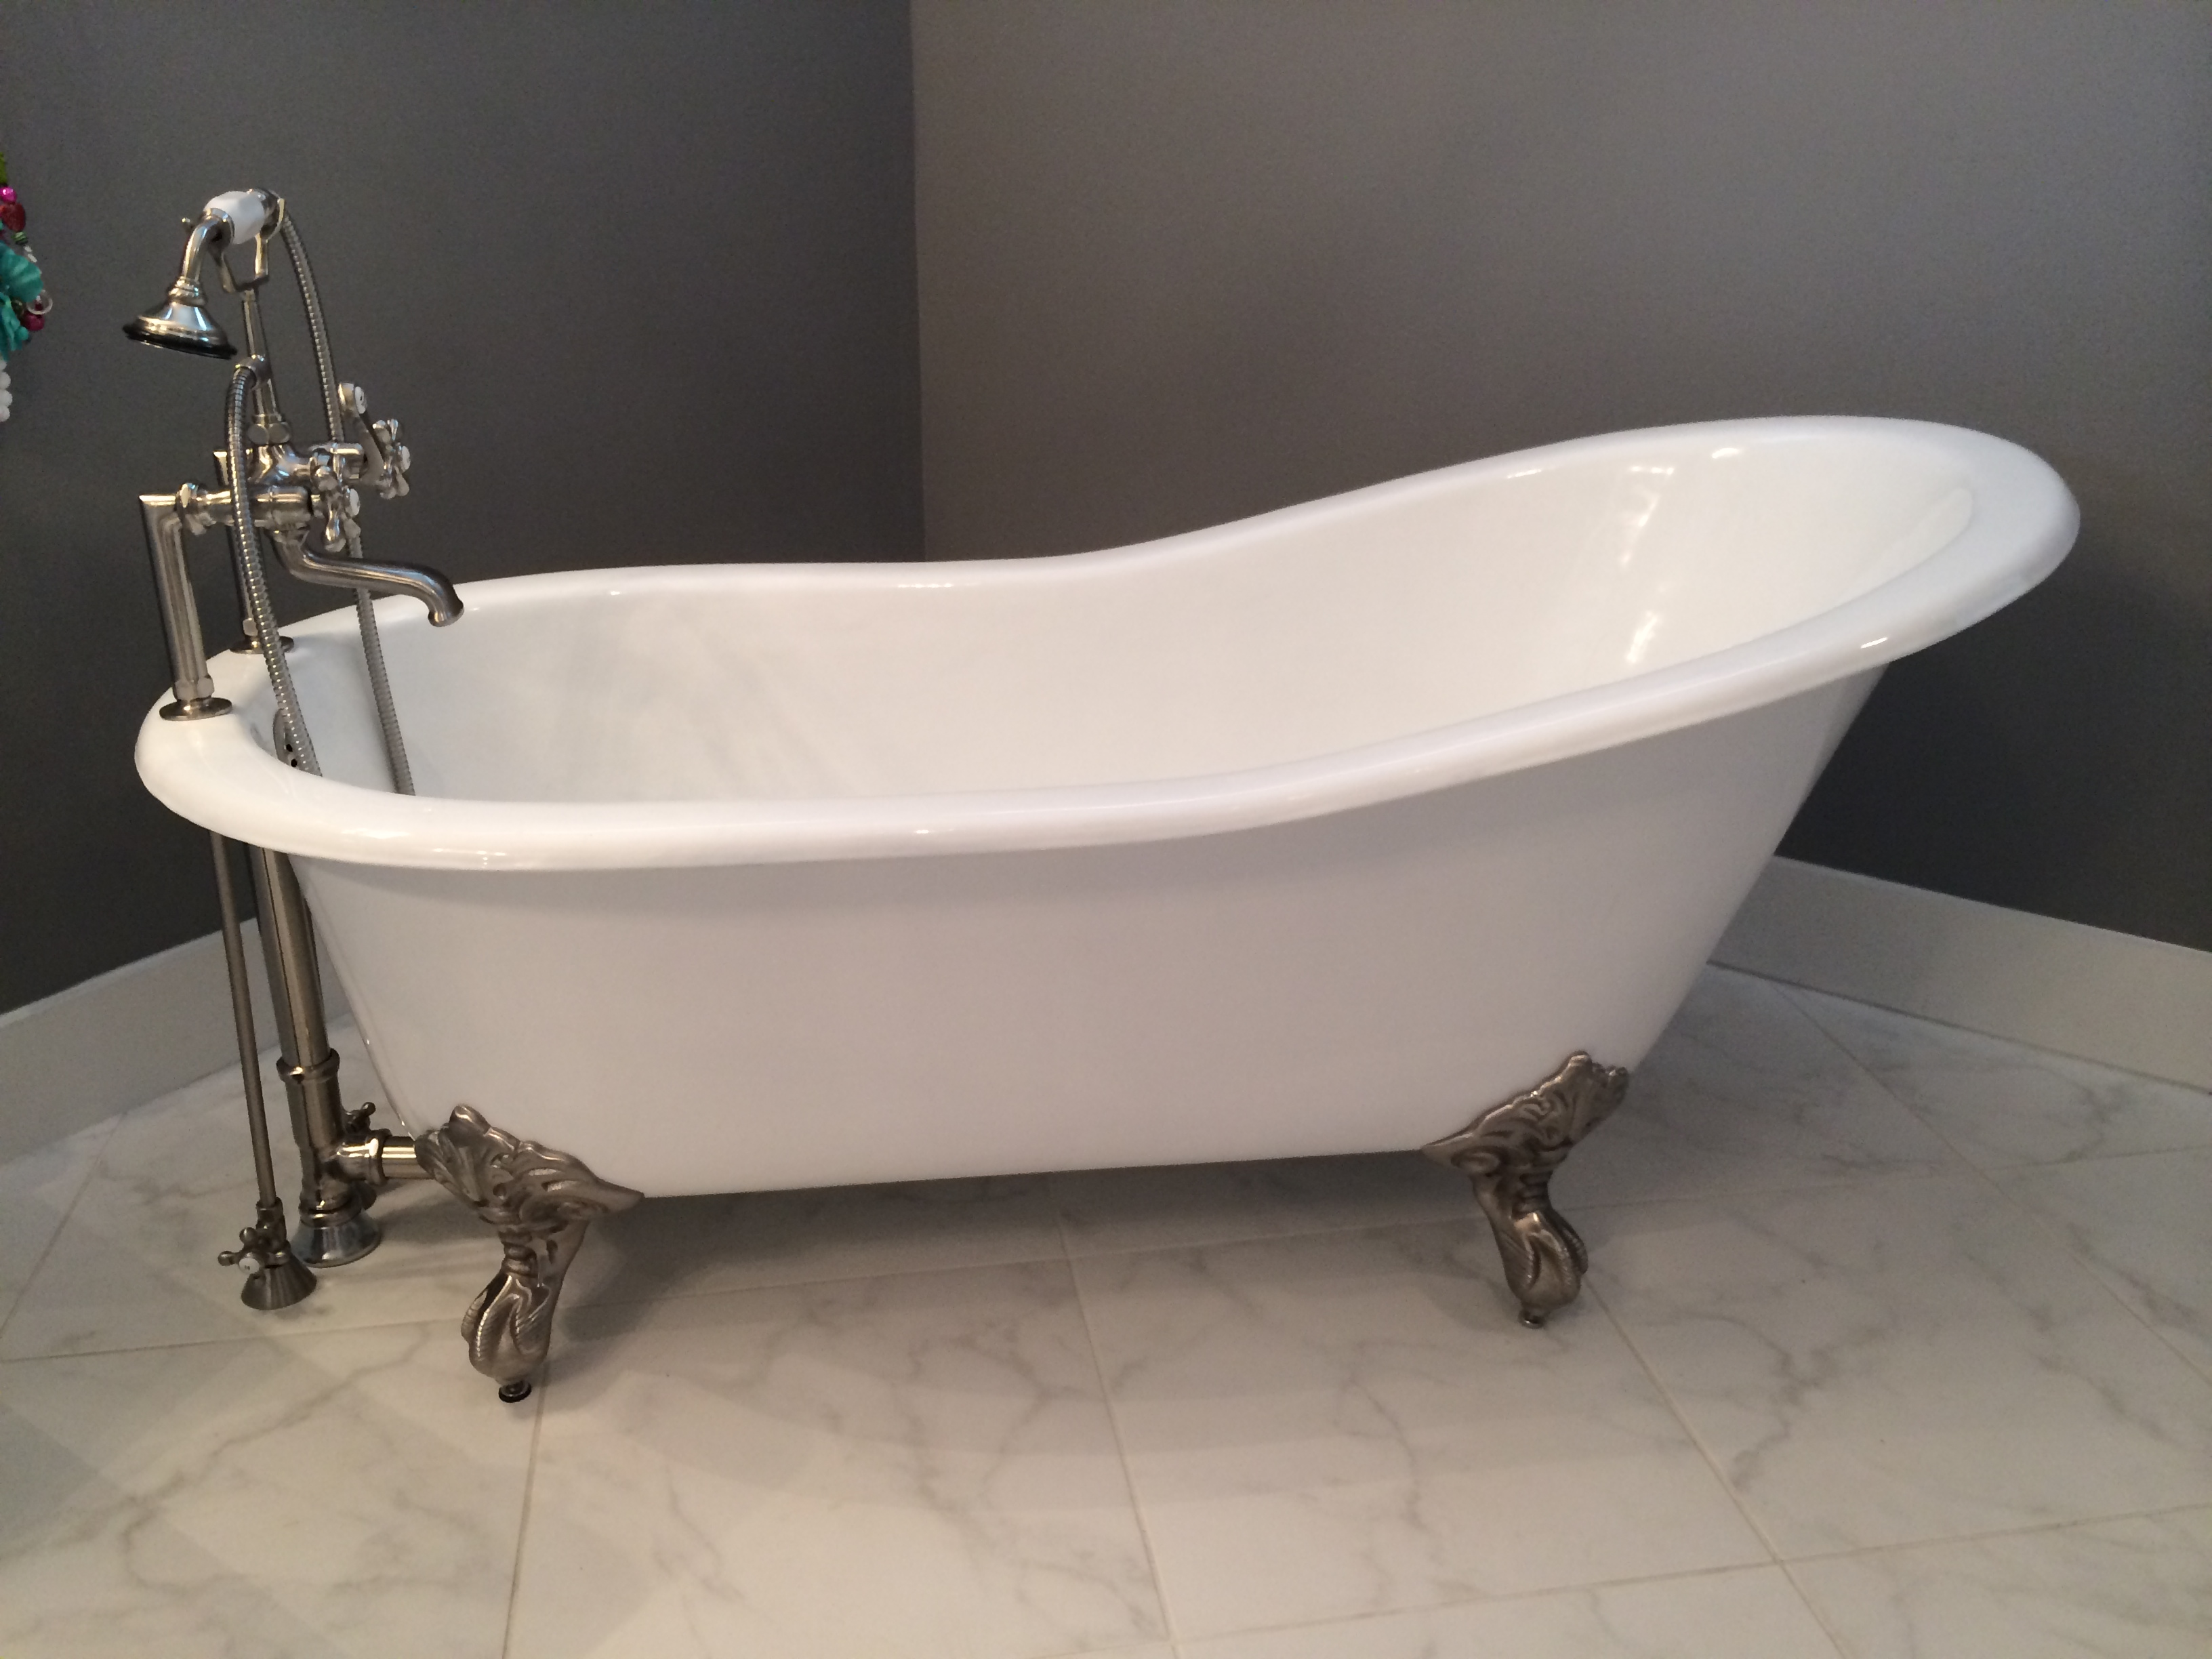 Why Buy A New Cast Iron Clawfoot Bathtub Instead Of An